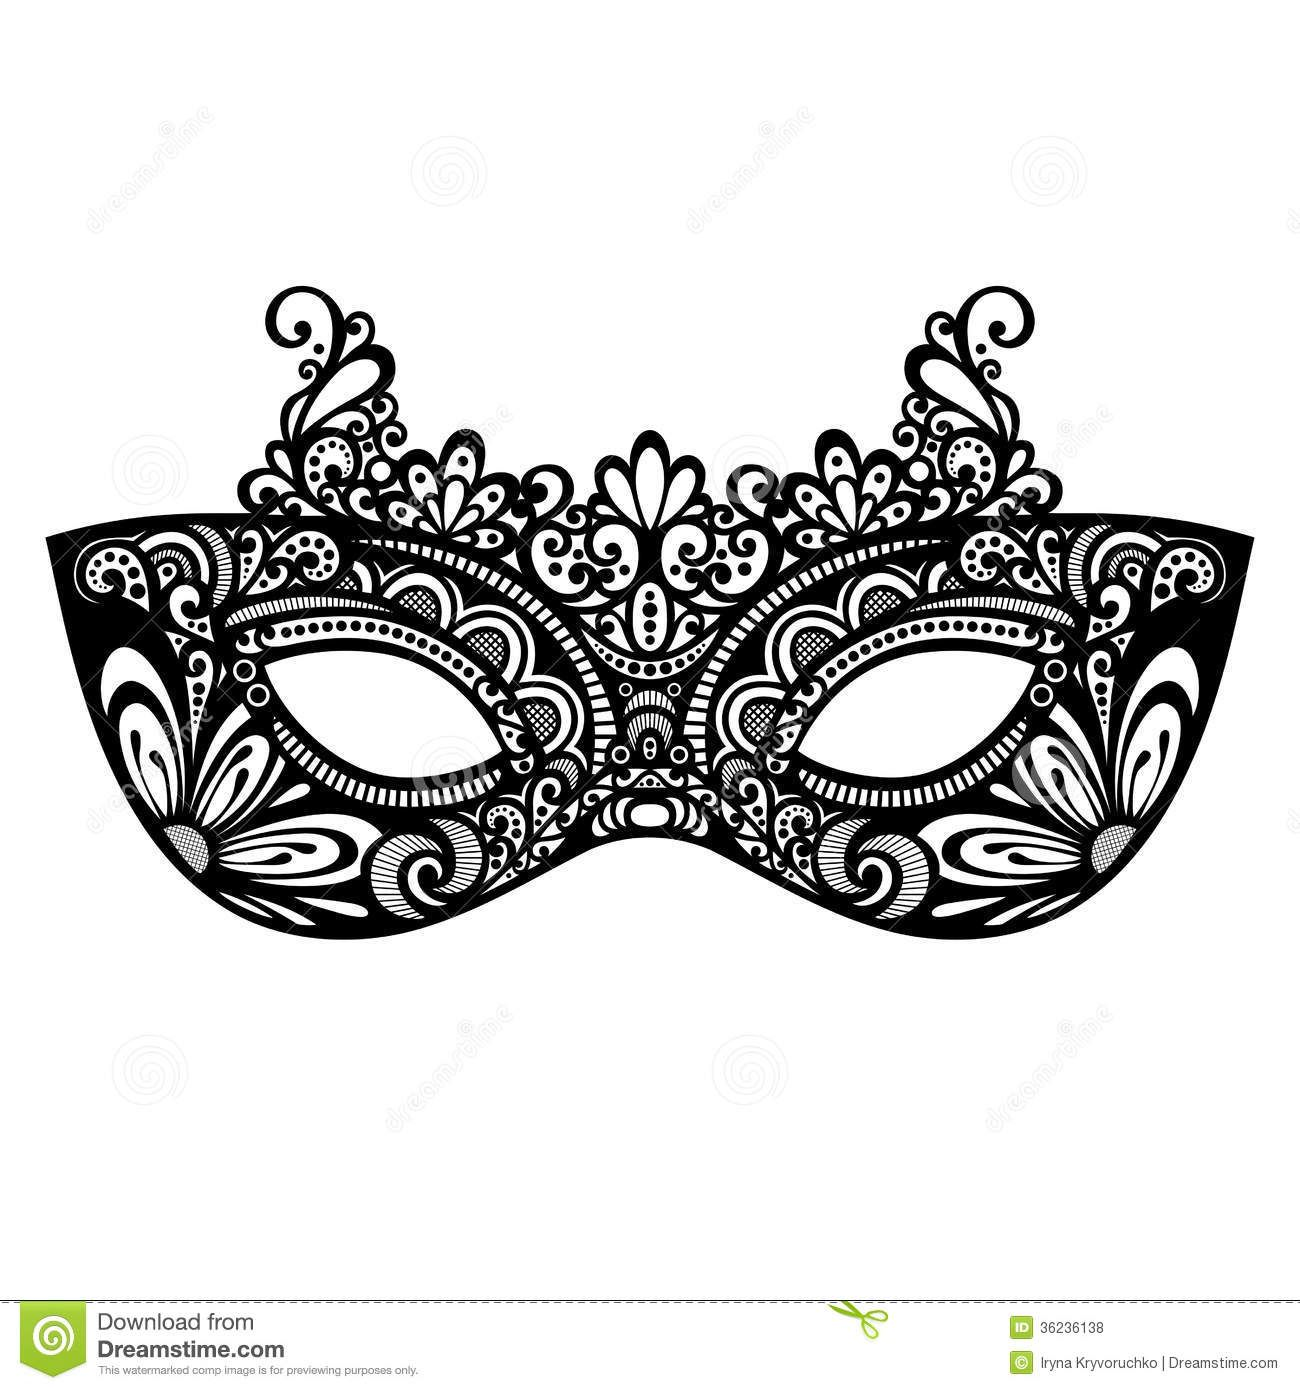 46 masquerade ball masks clip art party ideas for Masquerade ball masks templates